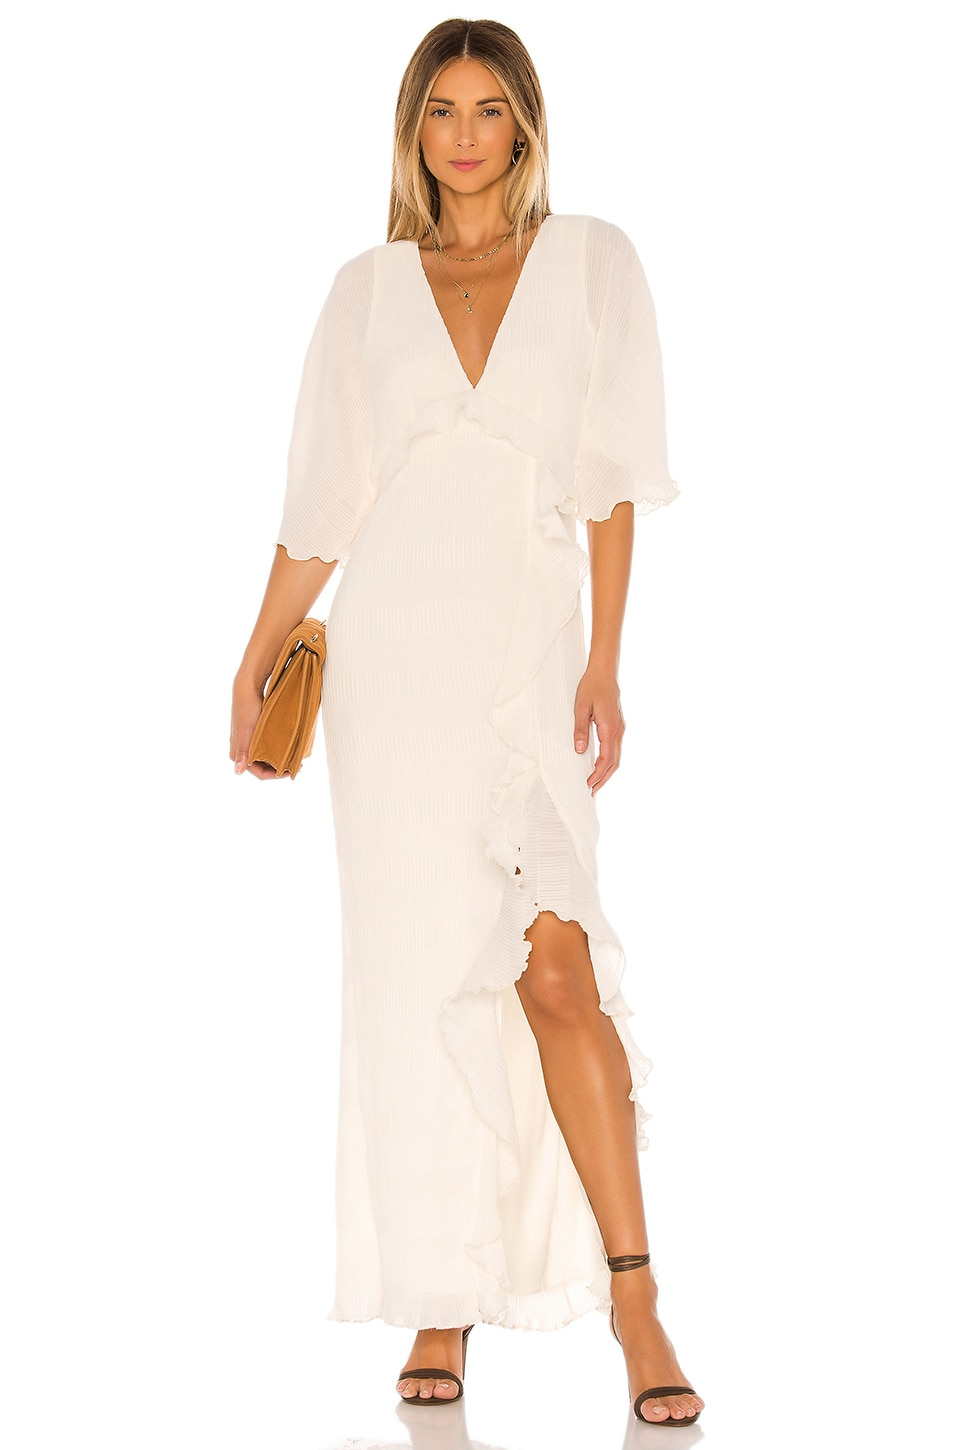 House of Harlow 1960 X REVOLVE Anabelle Maxi Dress in Ivory